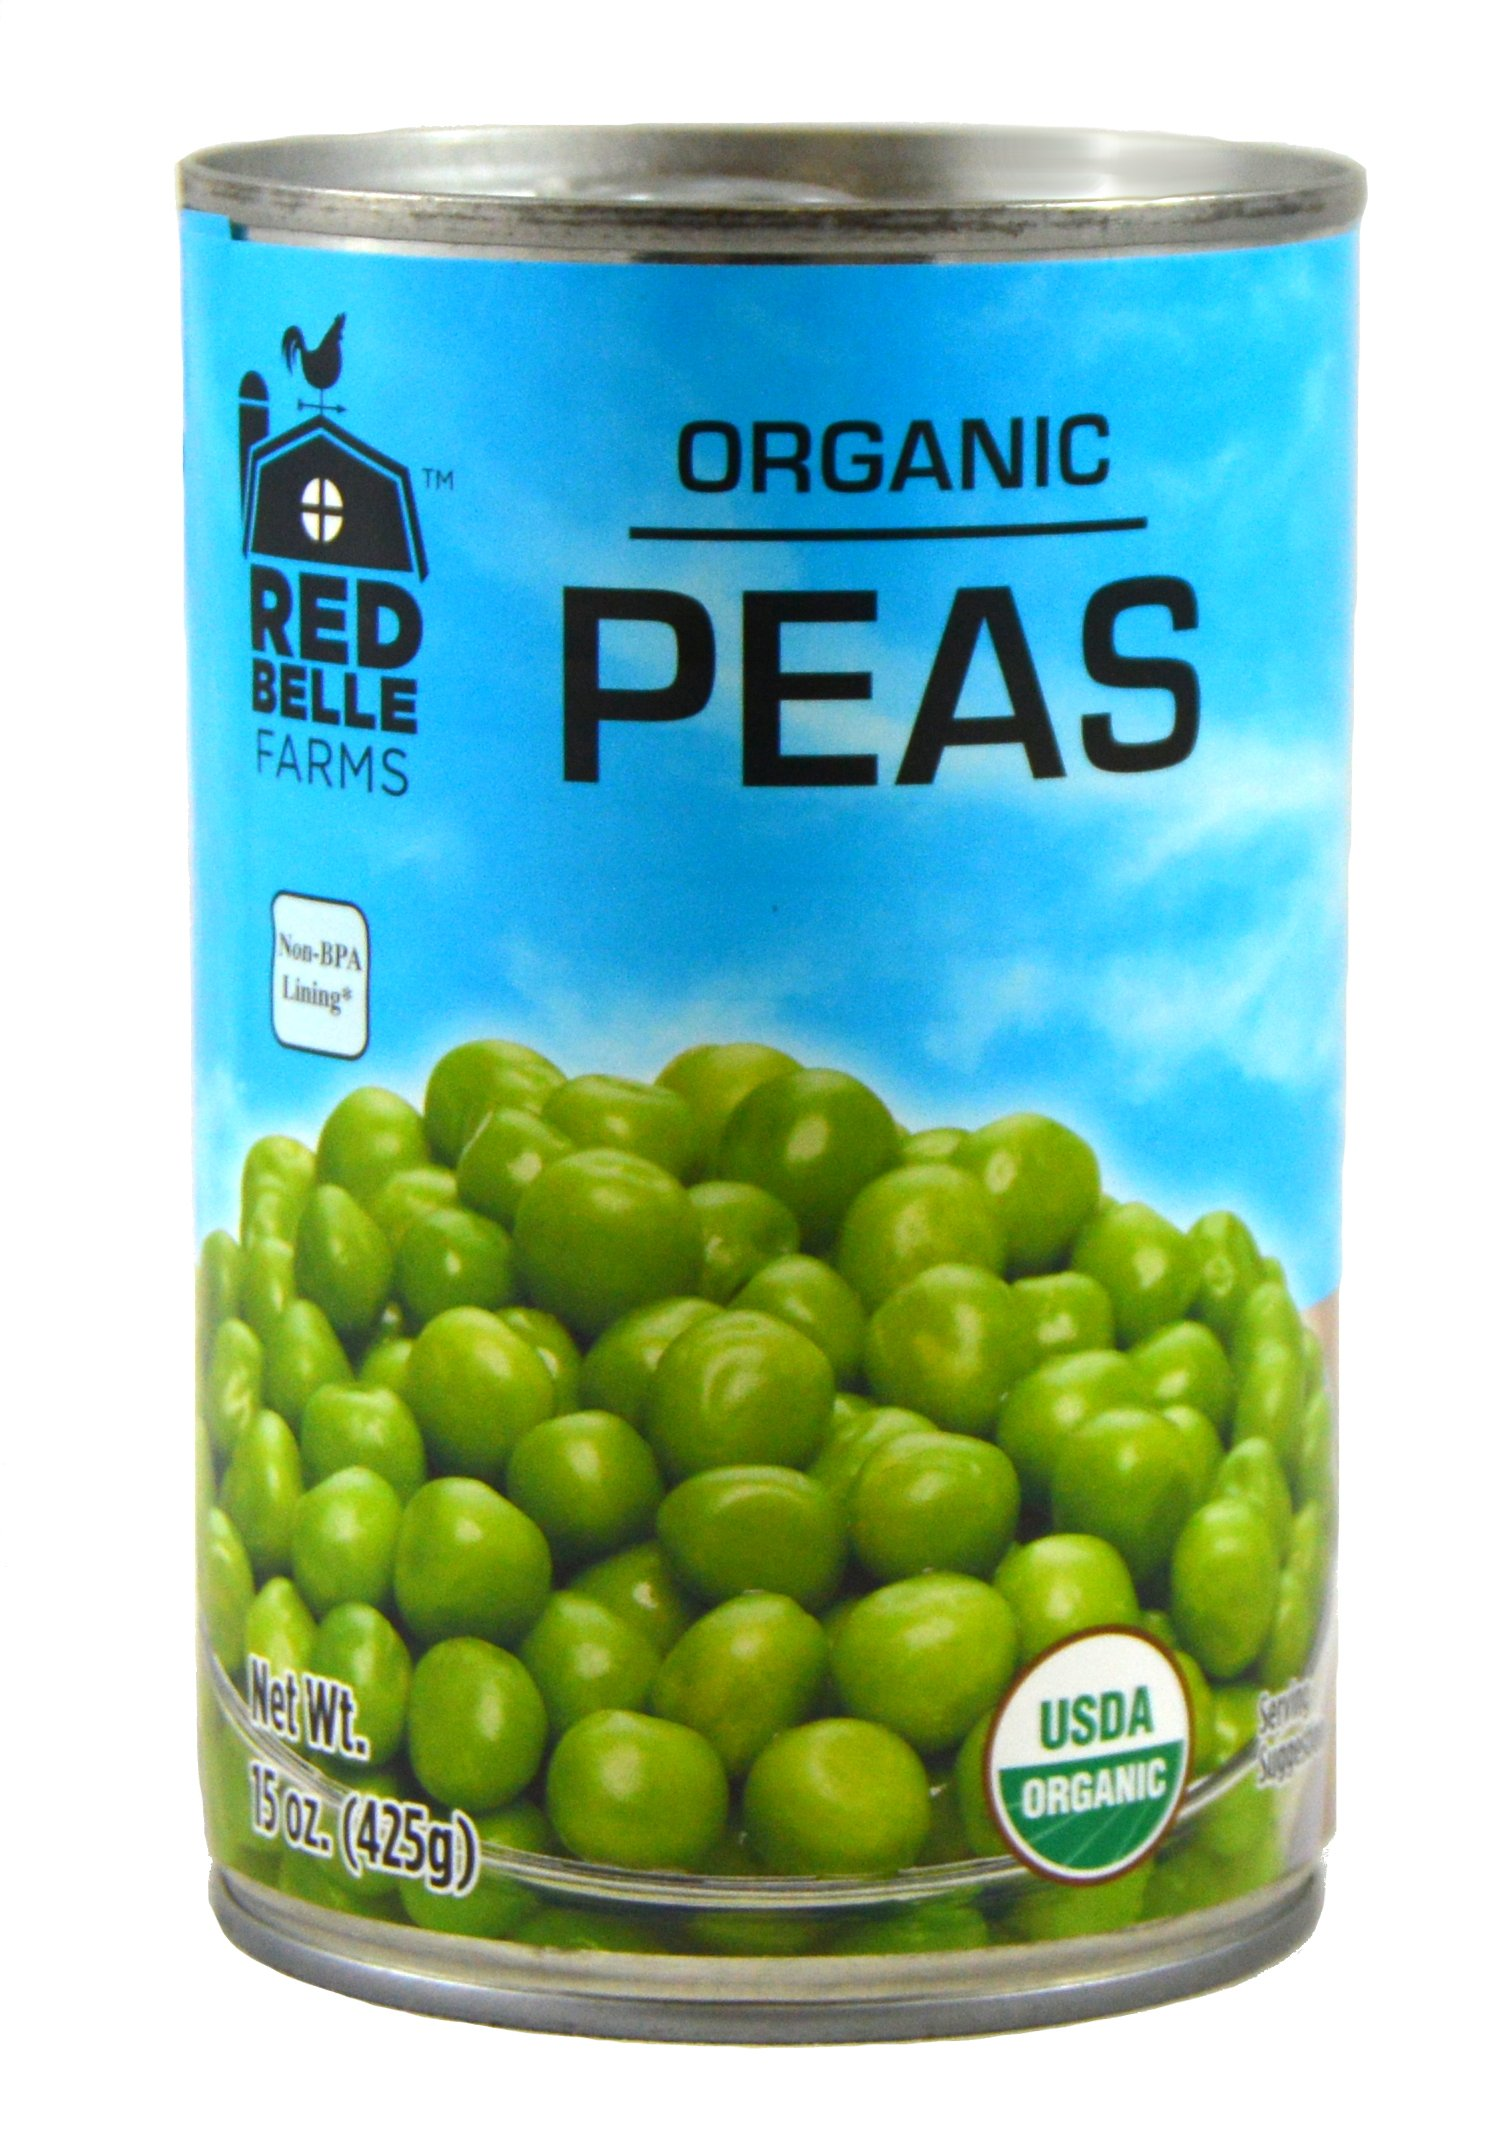 Red Belle Farms Organic Sweet Peas, 15 oz (425 g) (Pack of 12)